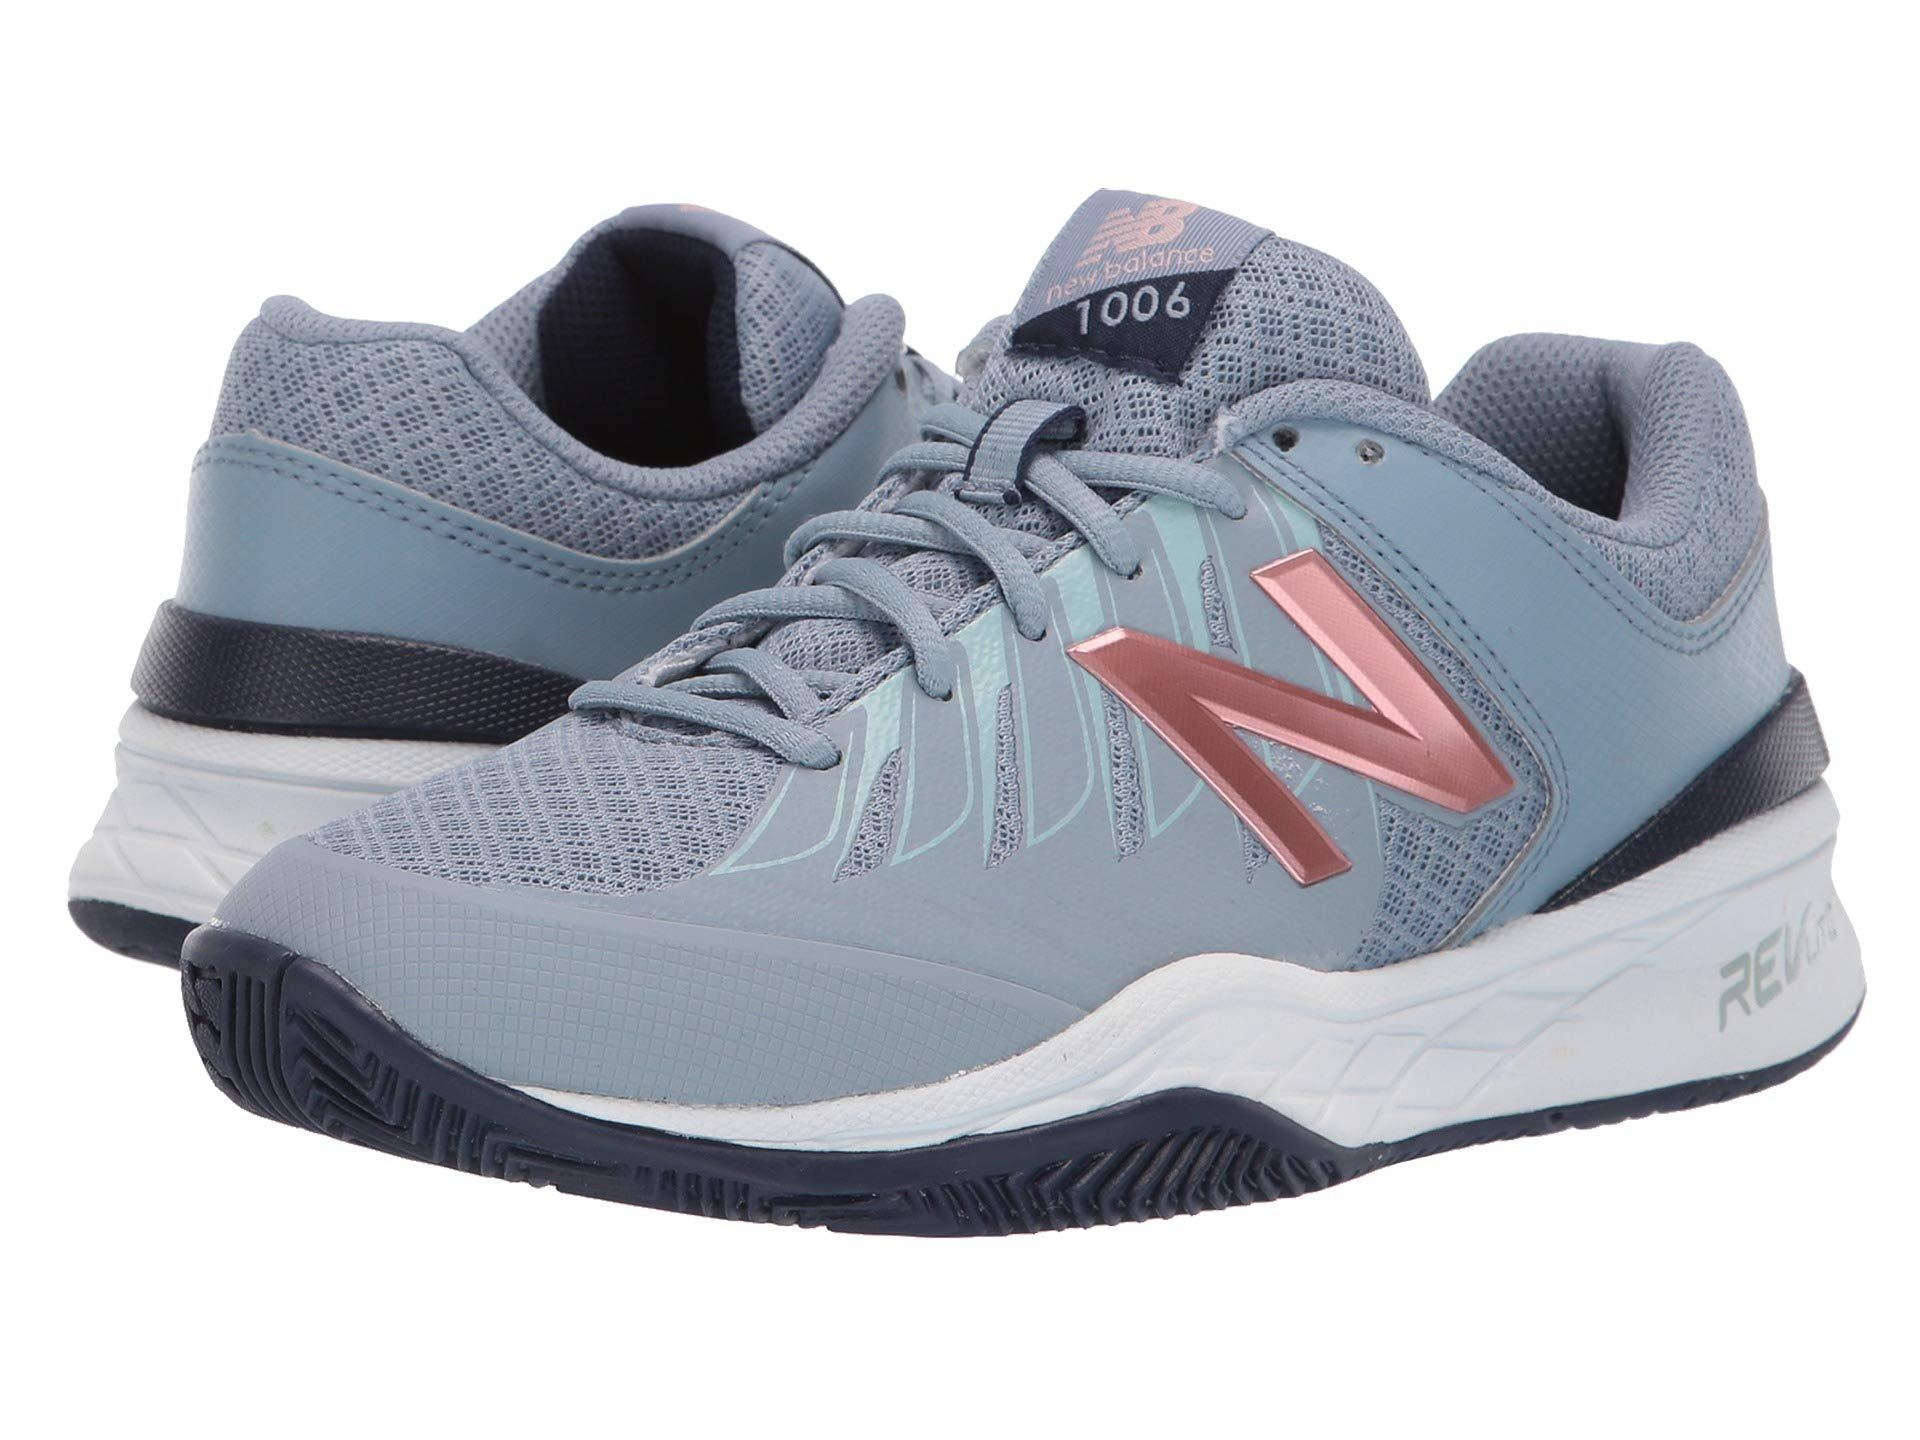 aee95a9fd63f Lyst - New Balance Wc1006v1 (black/pink) Women's Tennis Shoes in Blue